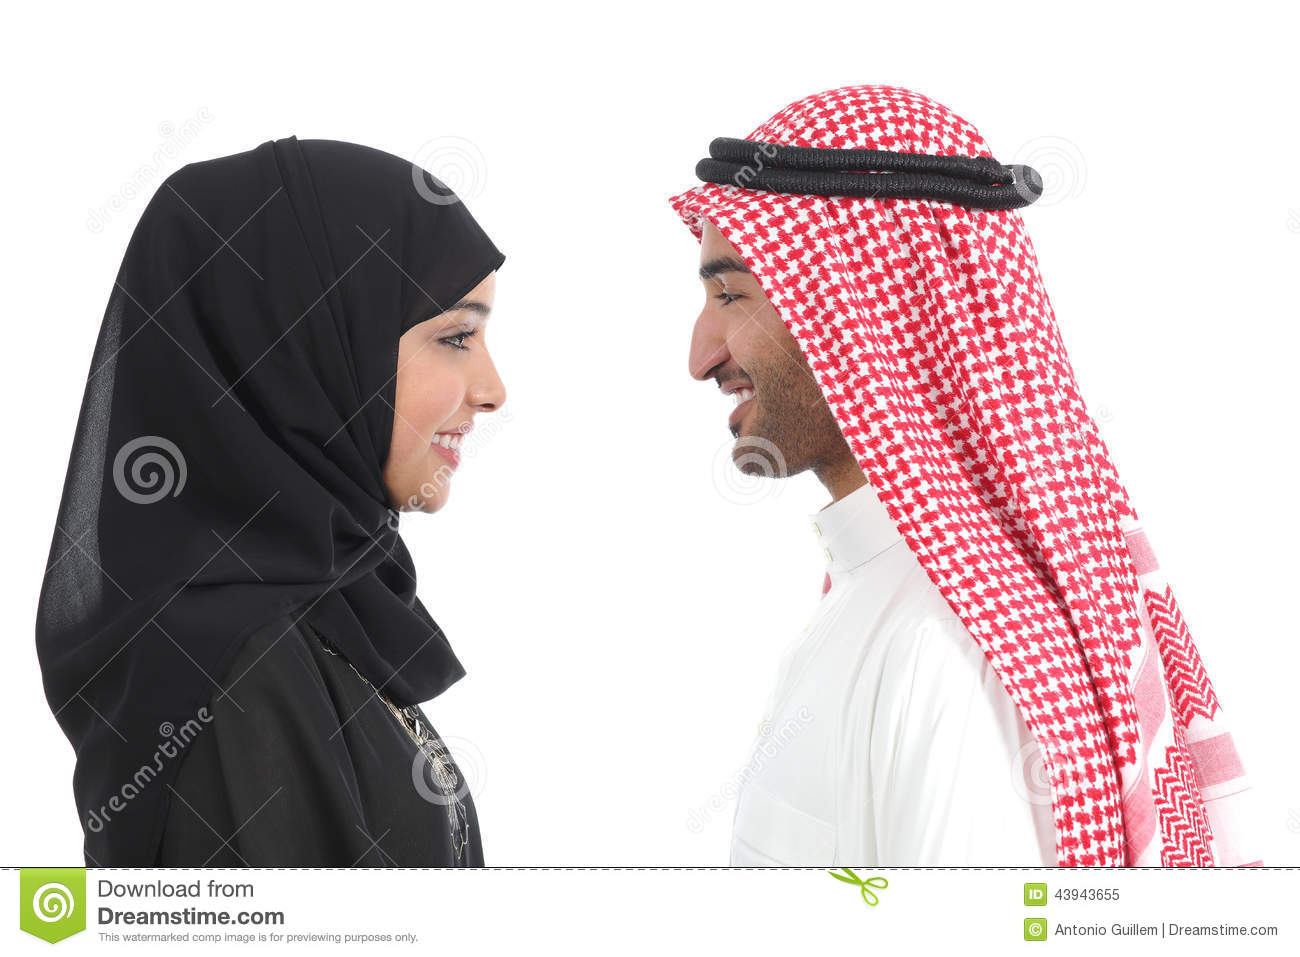 ona muslim singles Our online dating site will help you target potential matches according to location and it covers many of the major cities.